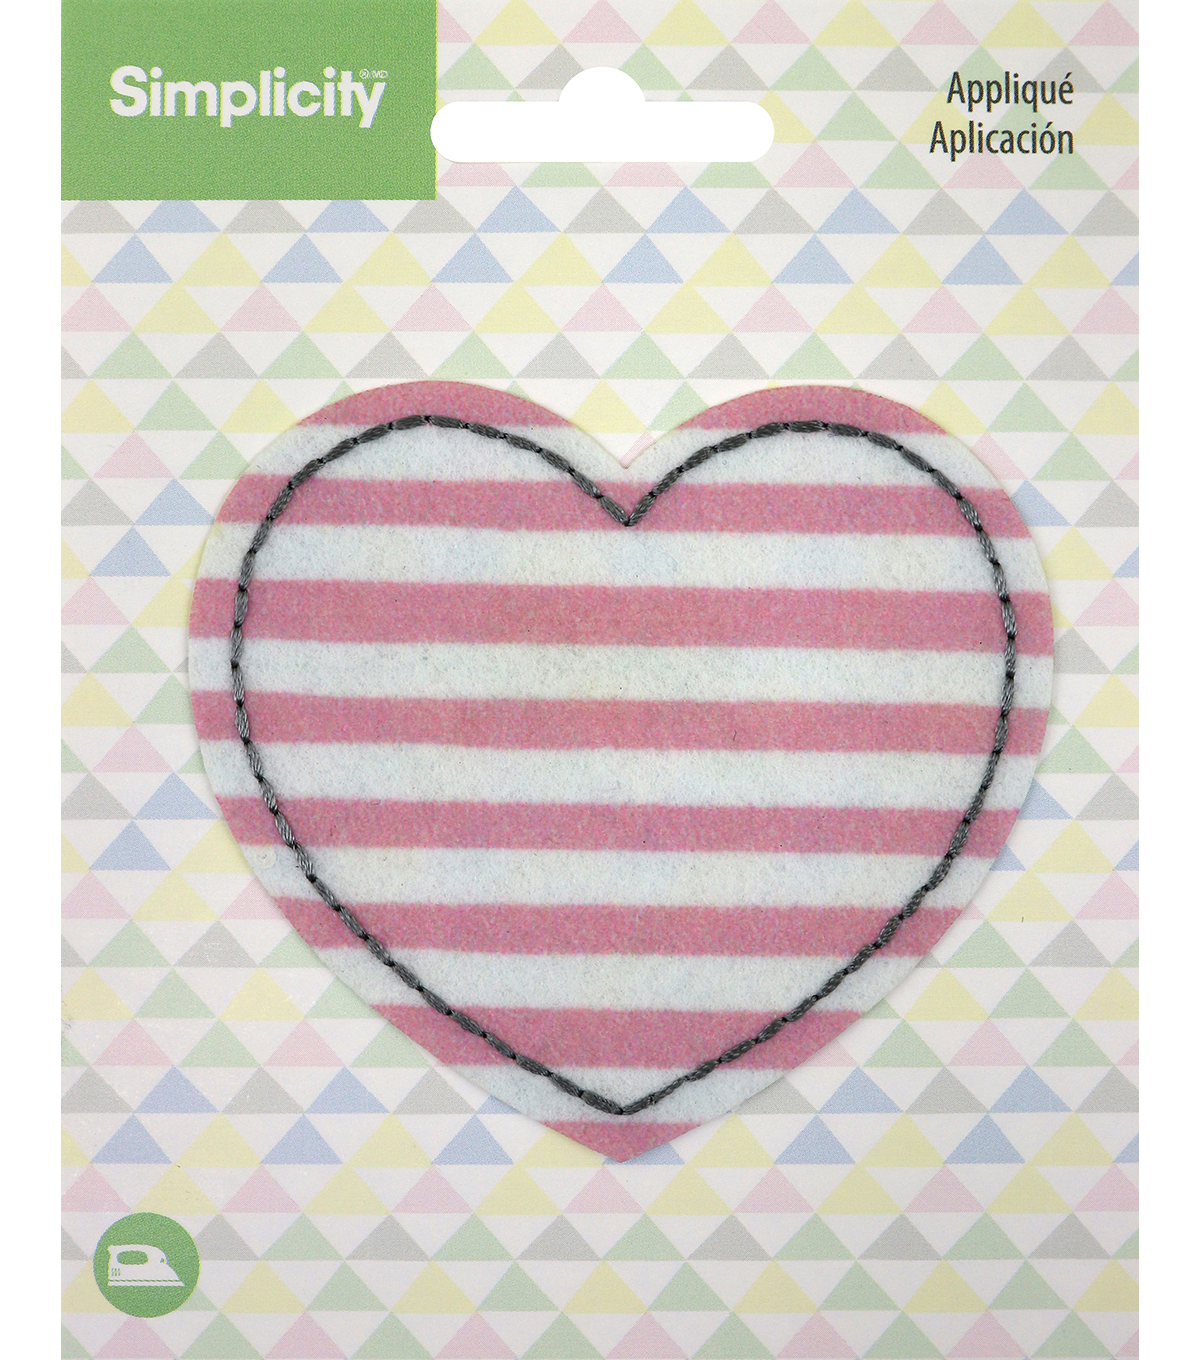 Simplicity Heart Iron-on Applique Patch-Pink & White Horizontal Stripes